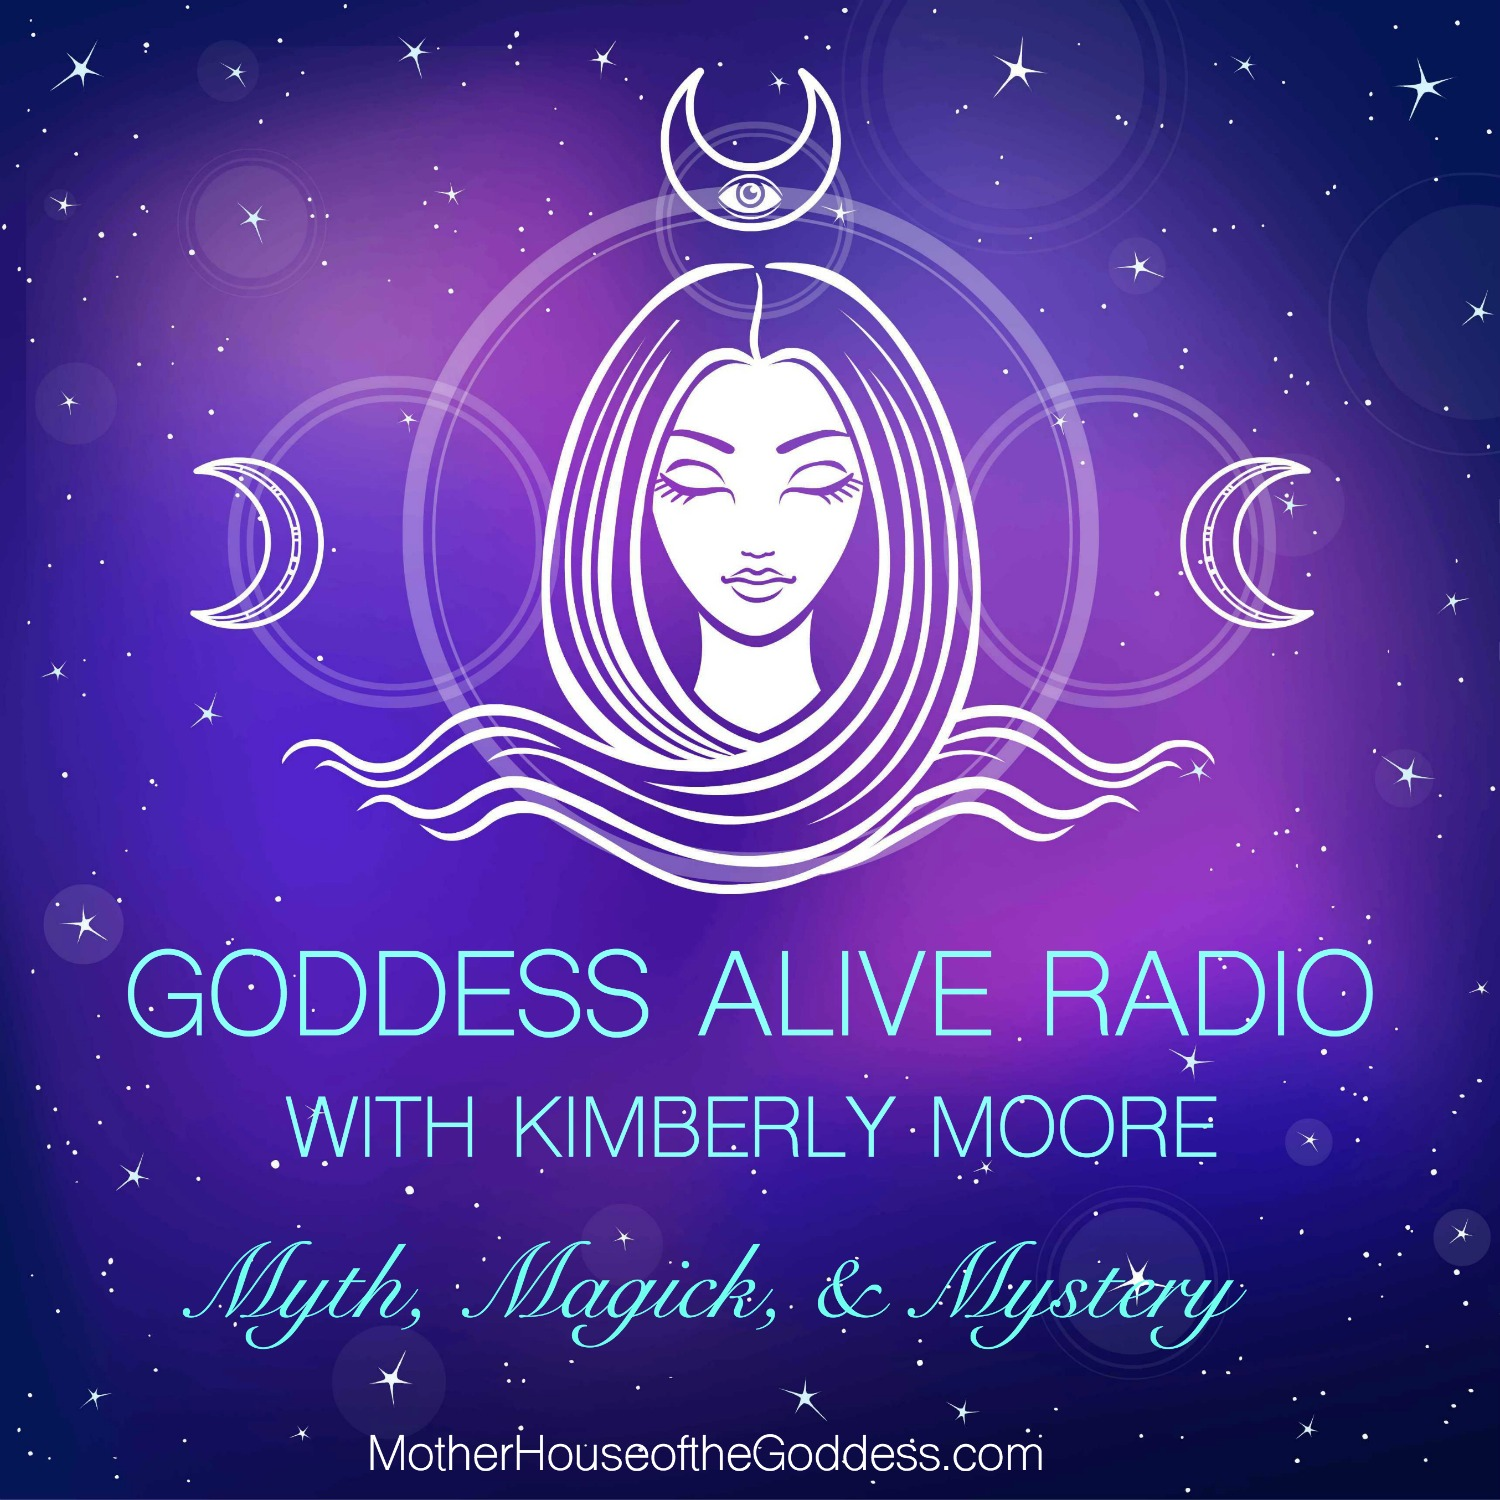 Goddess Alive Radio Podcasts